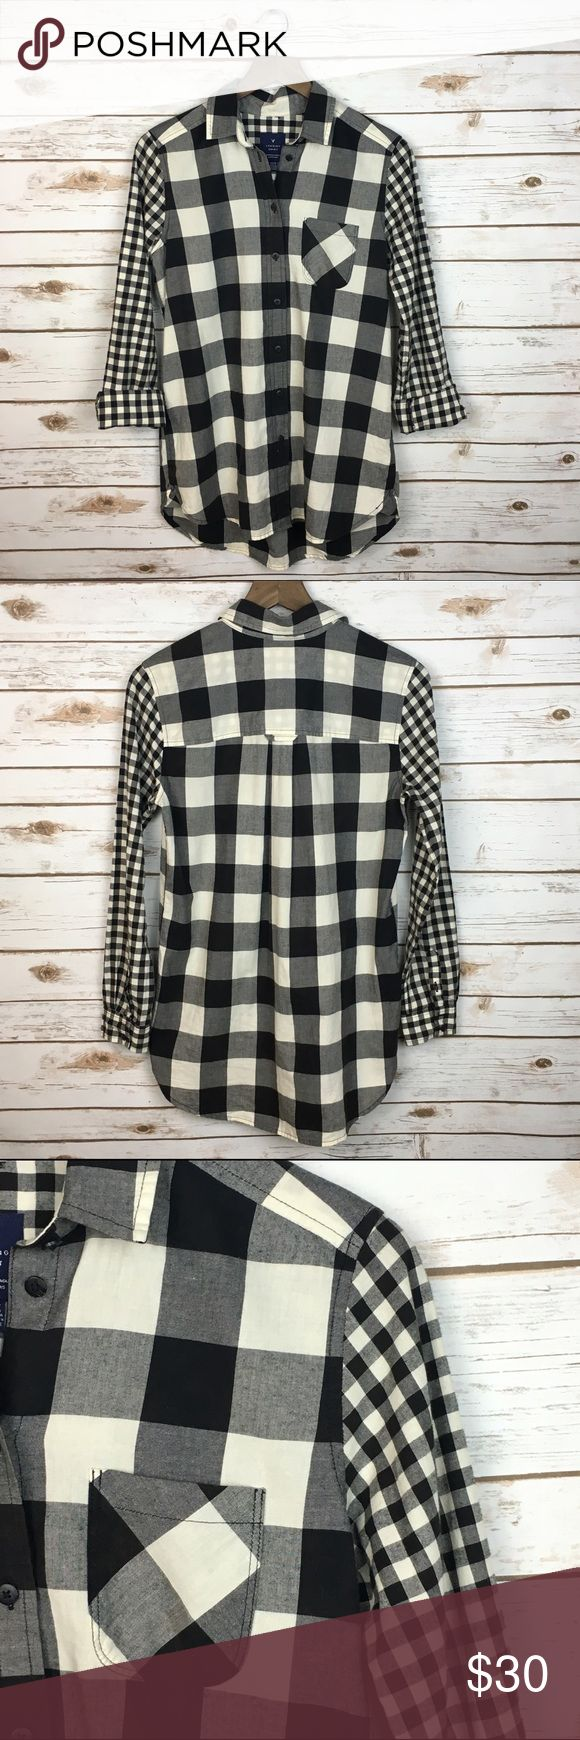 """[AE] Buffalo Plaid Flannel Tunic Shirt Long XS """"Jegging Shirt"""". Soft and cozy buffalo plaid button down with gingham check sleeves. Long sleeves. Pocket on left chest. Perfect with leggings and skinnies.   🔹Fabric: 100% Cotton  🔹Bust: 19"""" 🔹Length: 28"""" - 30"""" 🔹Condition: EUC. Like new. No flaws.  Measurements taken while lying flat. American Eagle Outfitters Tops Button Down Shirts"""